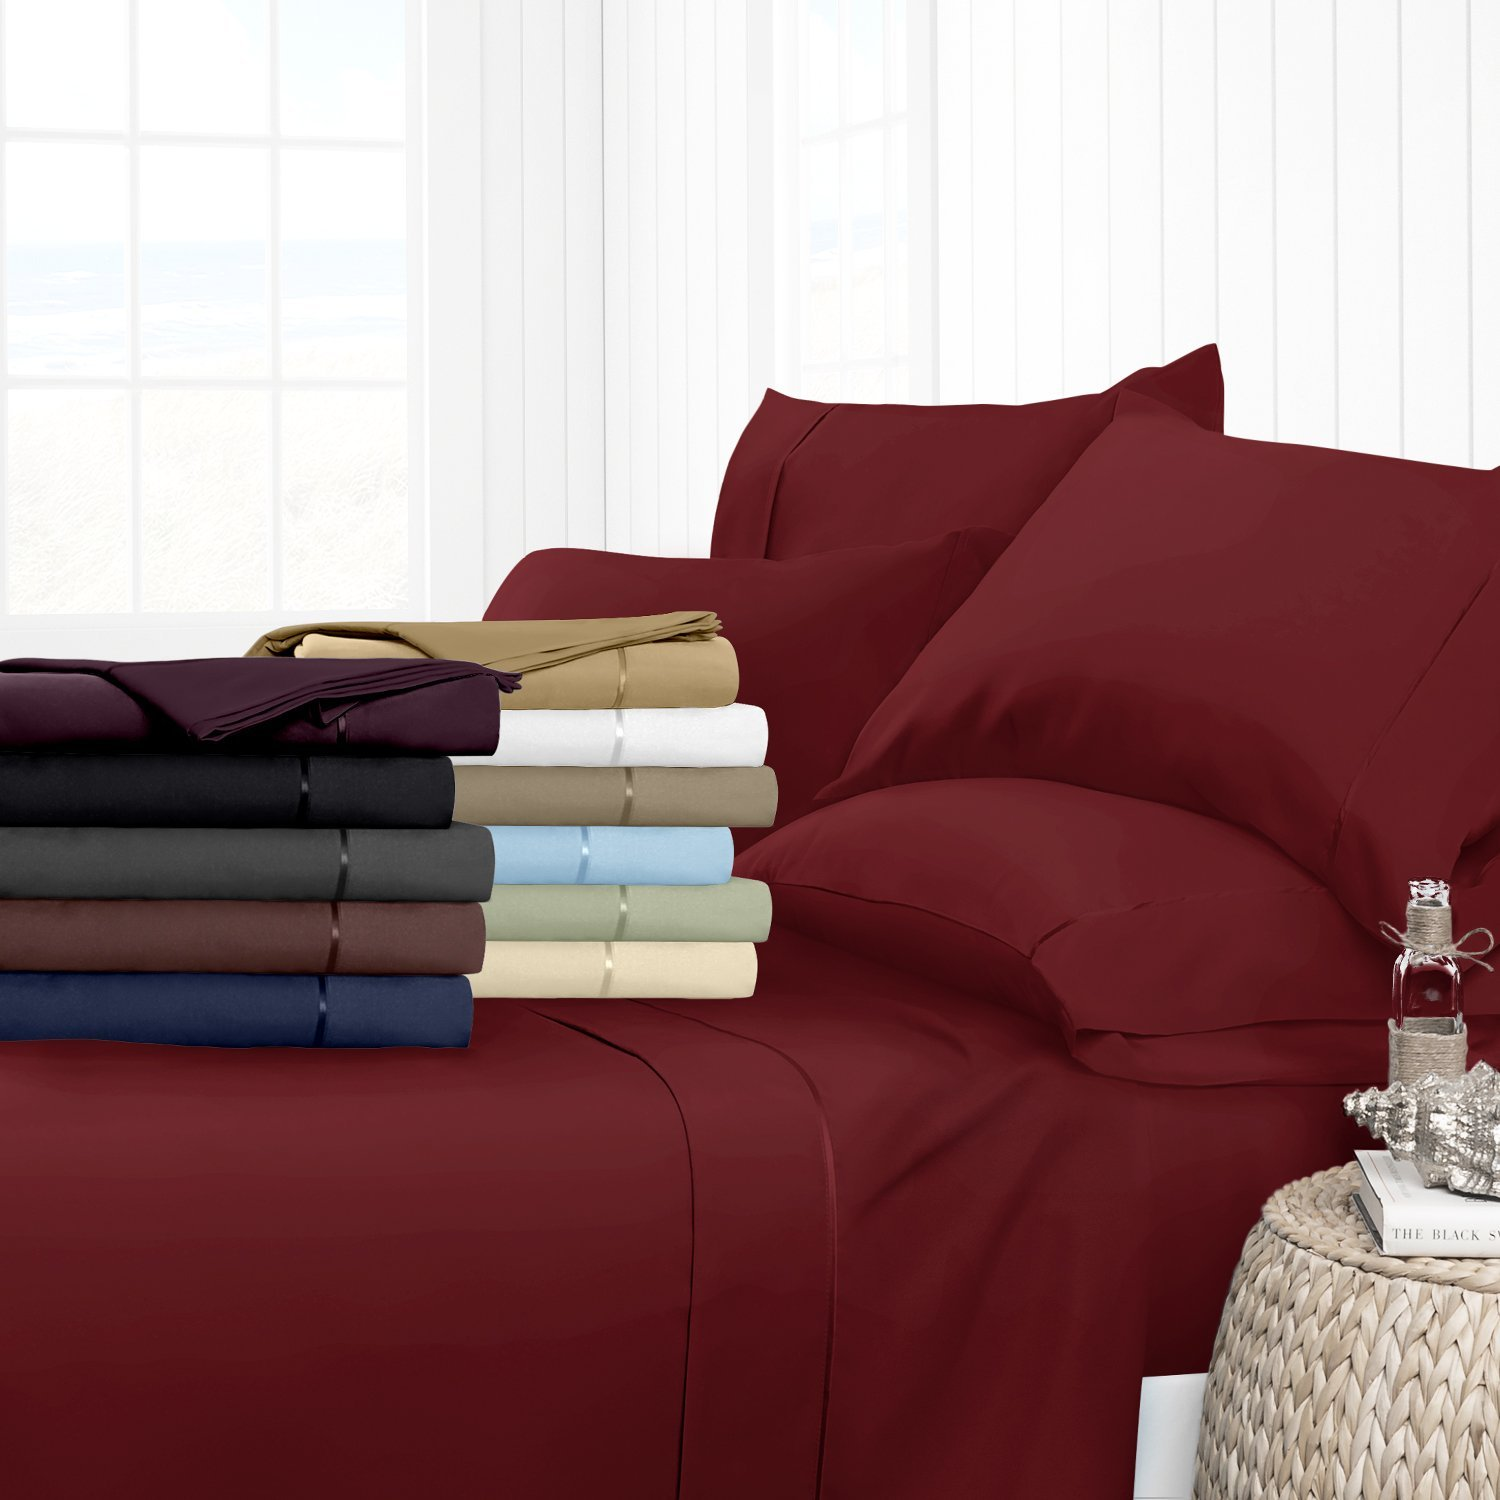 Egyptian Luxury 1700 Hotel Collection 4-Piece Bed Sheet Set